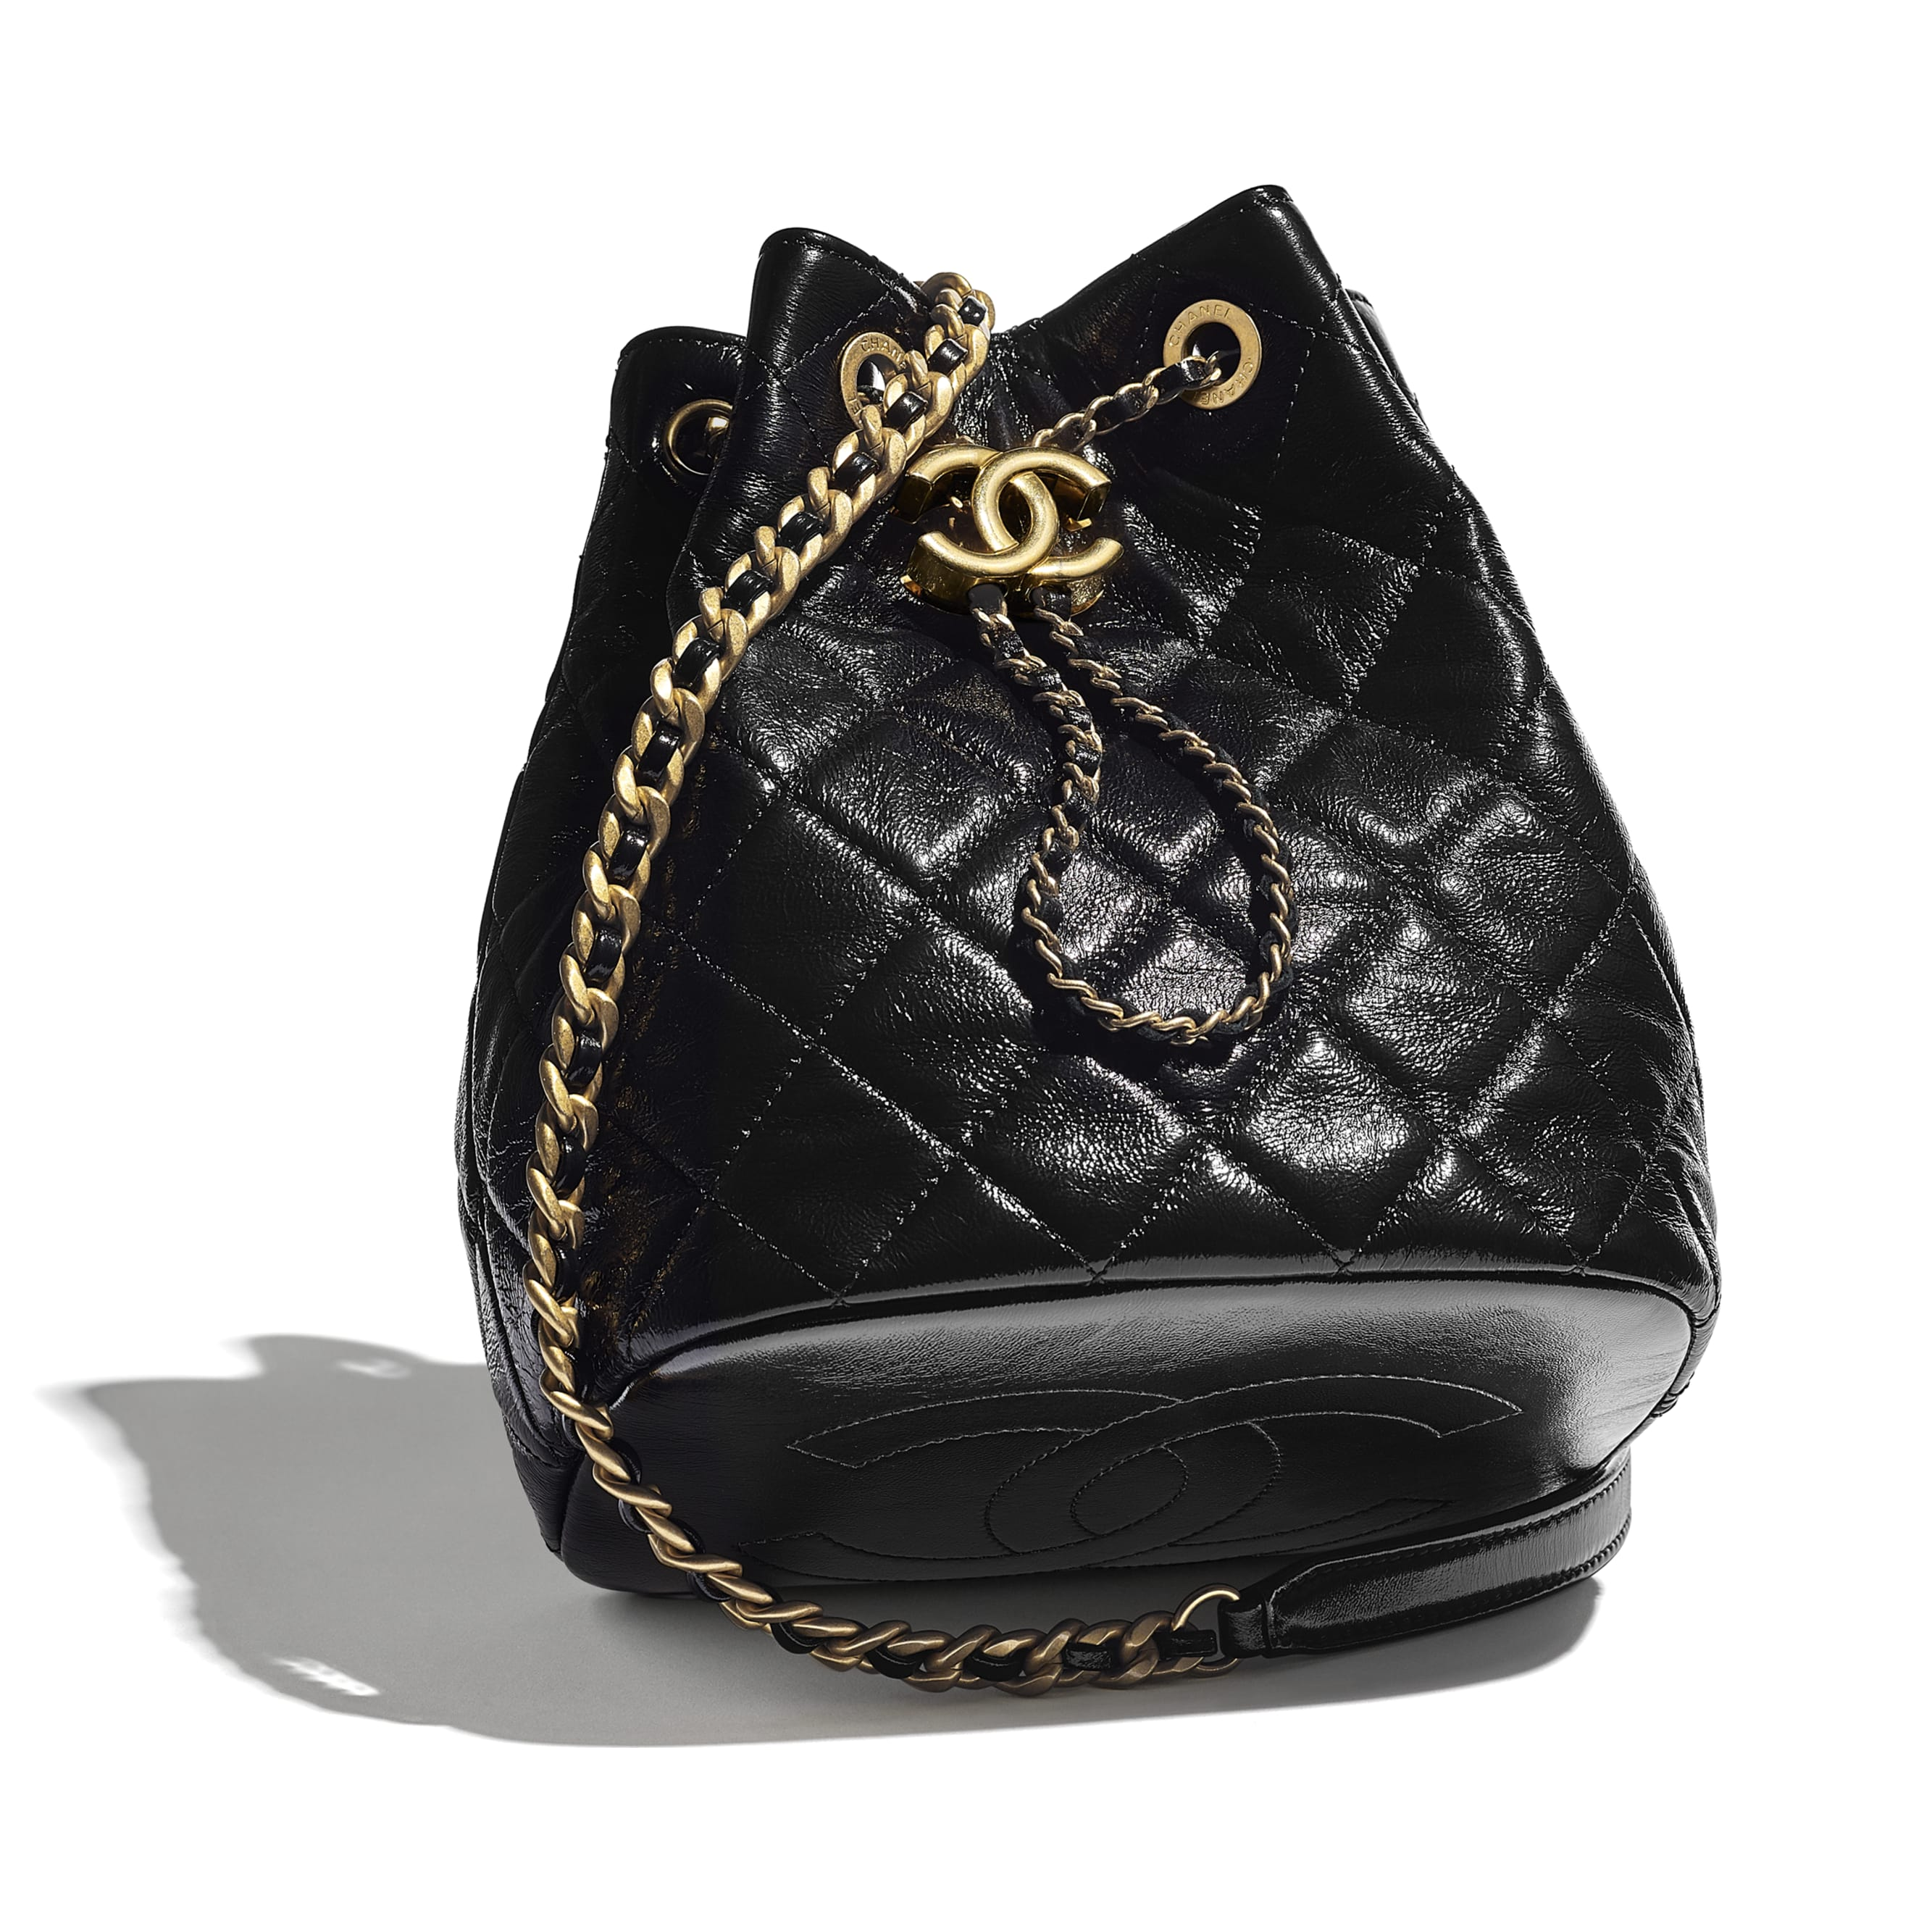 Drawstring Bag - Black - Shiny Lambskin & Gold-Tone Metal - CHANEL - Extra view - see standard sized version